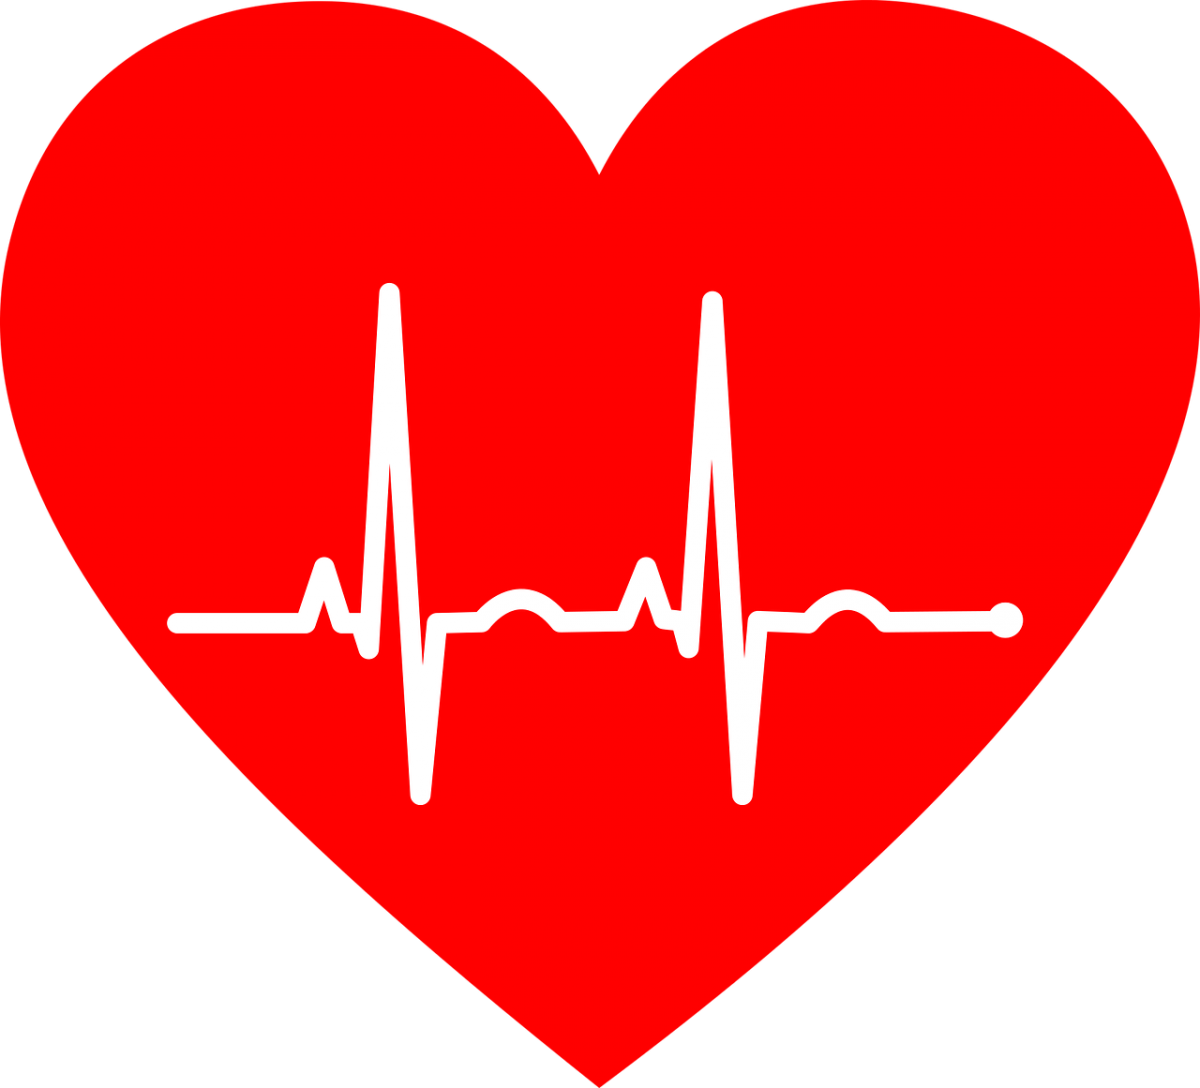 heart symbol surrounding an EKG recording